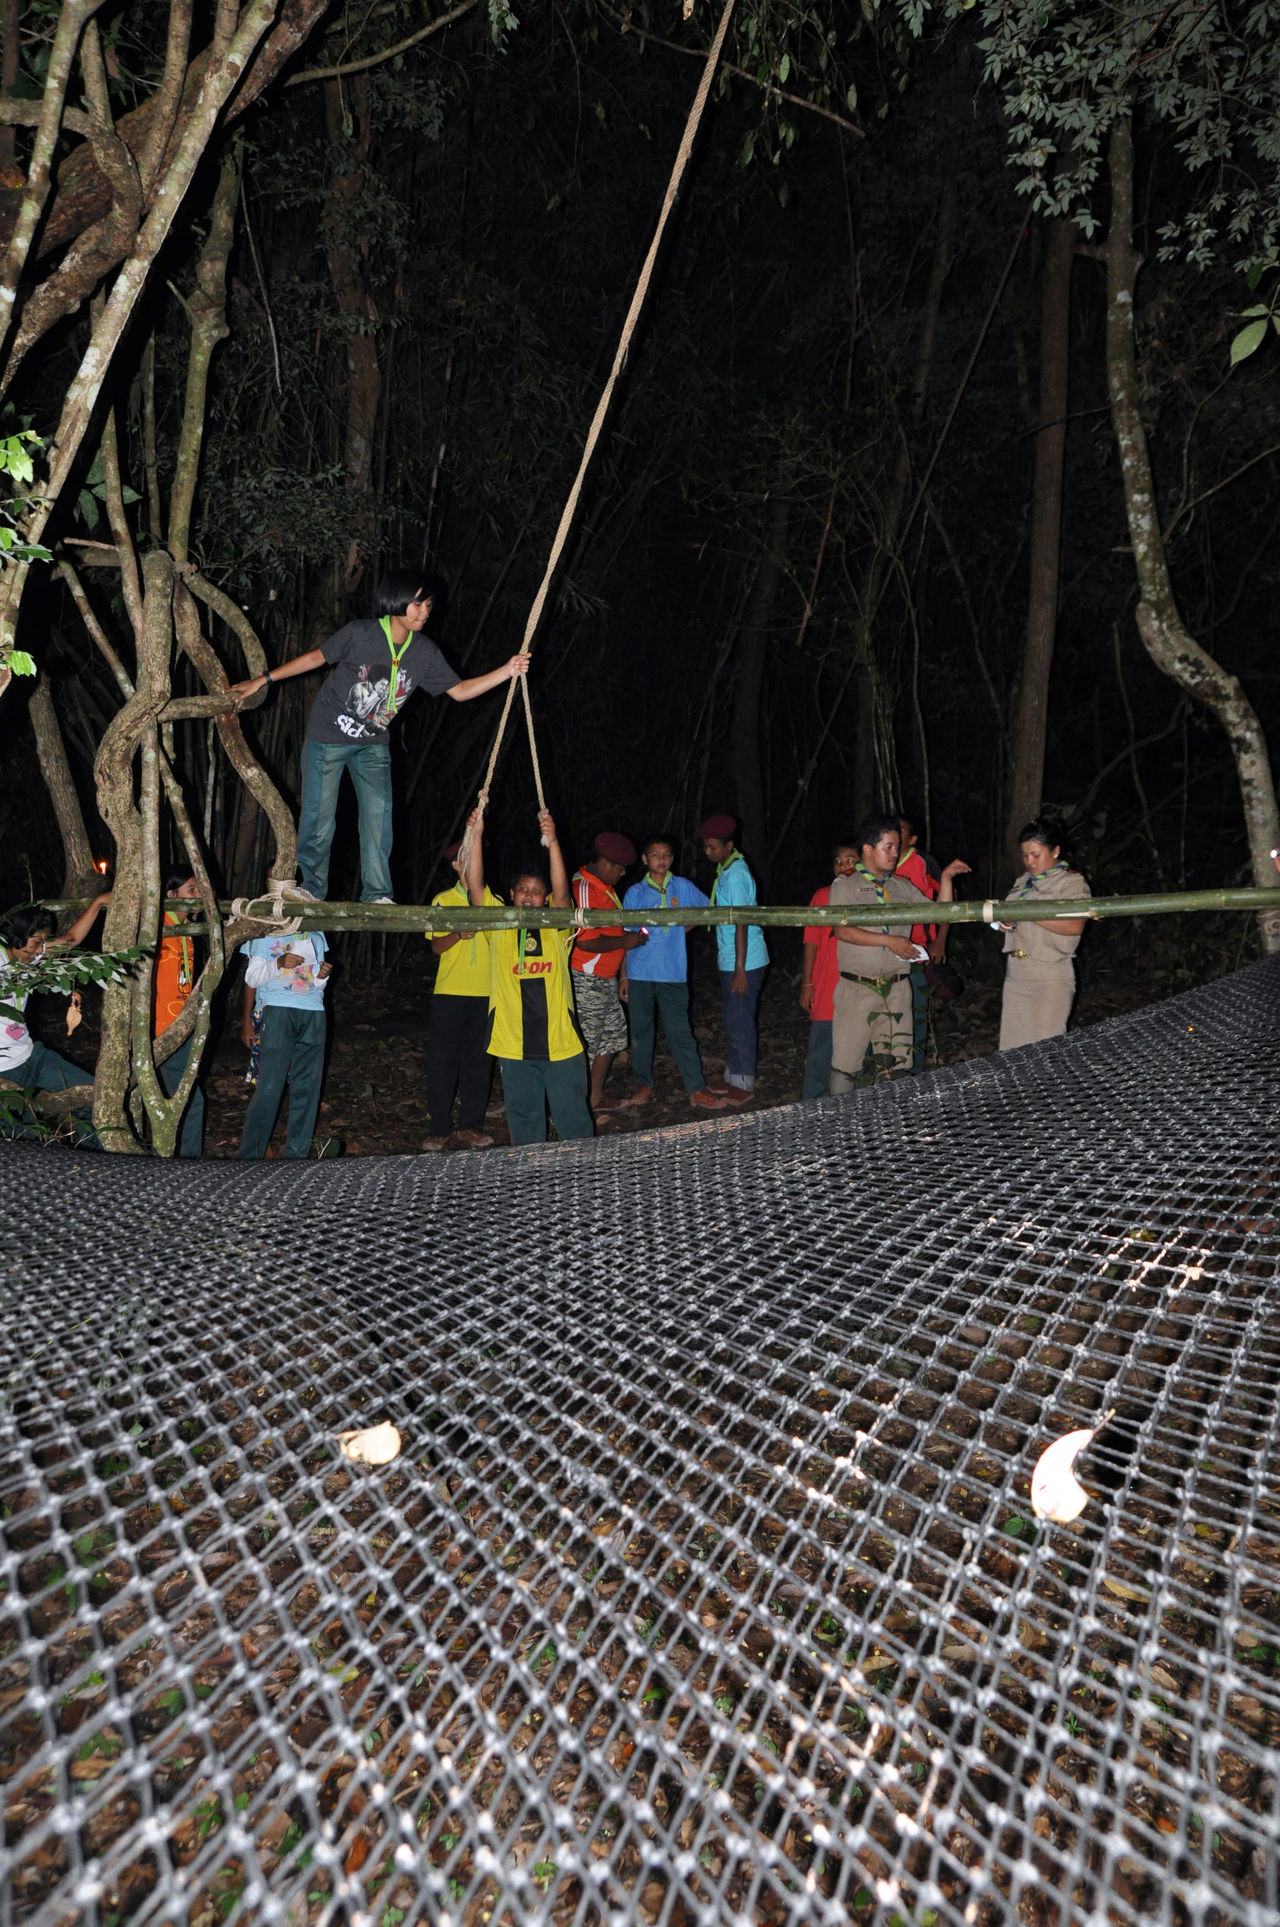 Activities Adventure Boys Camping Education Fun Girl Happy Knot Learning Life Style Nature People Pioneering Scout Scouts Skills  Student Summer Team Teamwork Tent Thai Thailand Thumb Stick